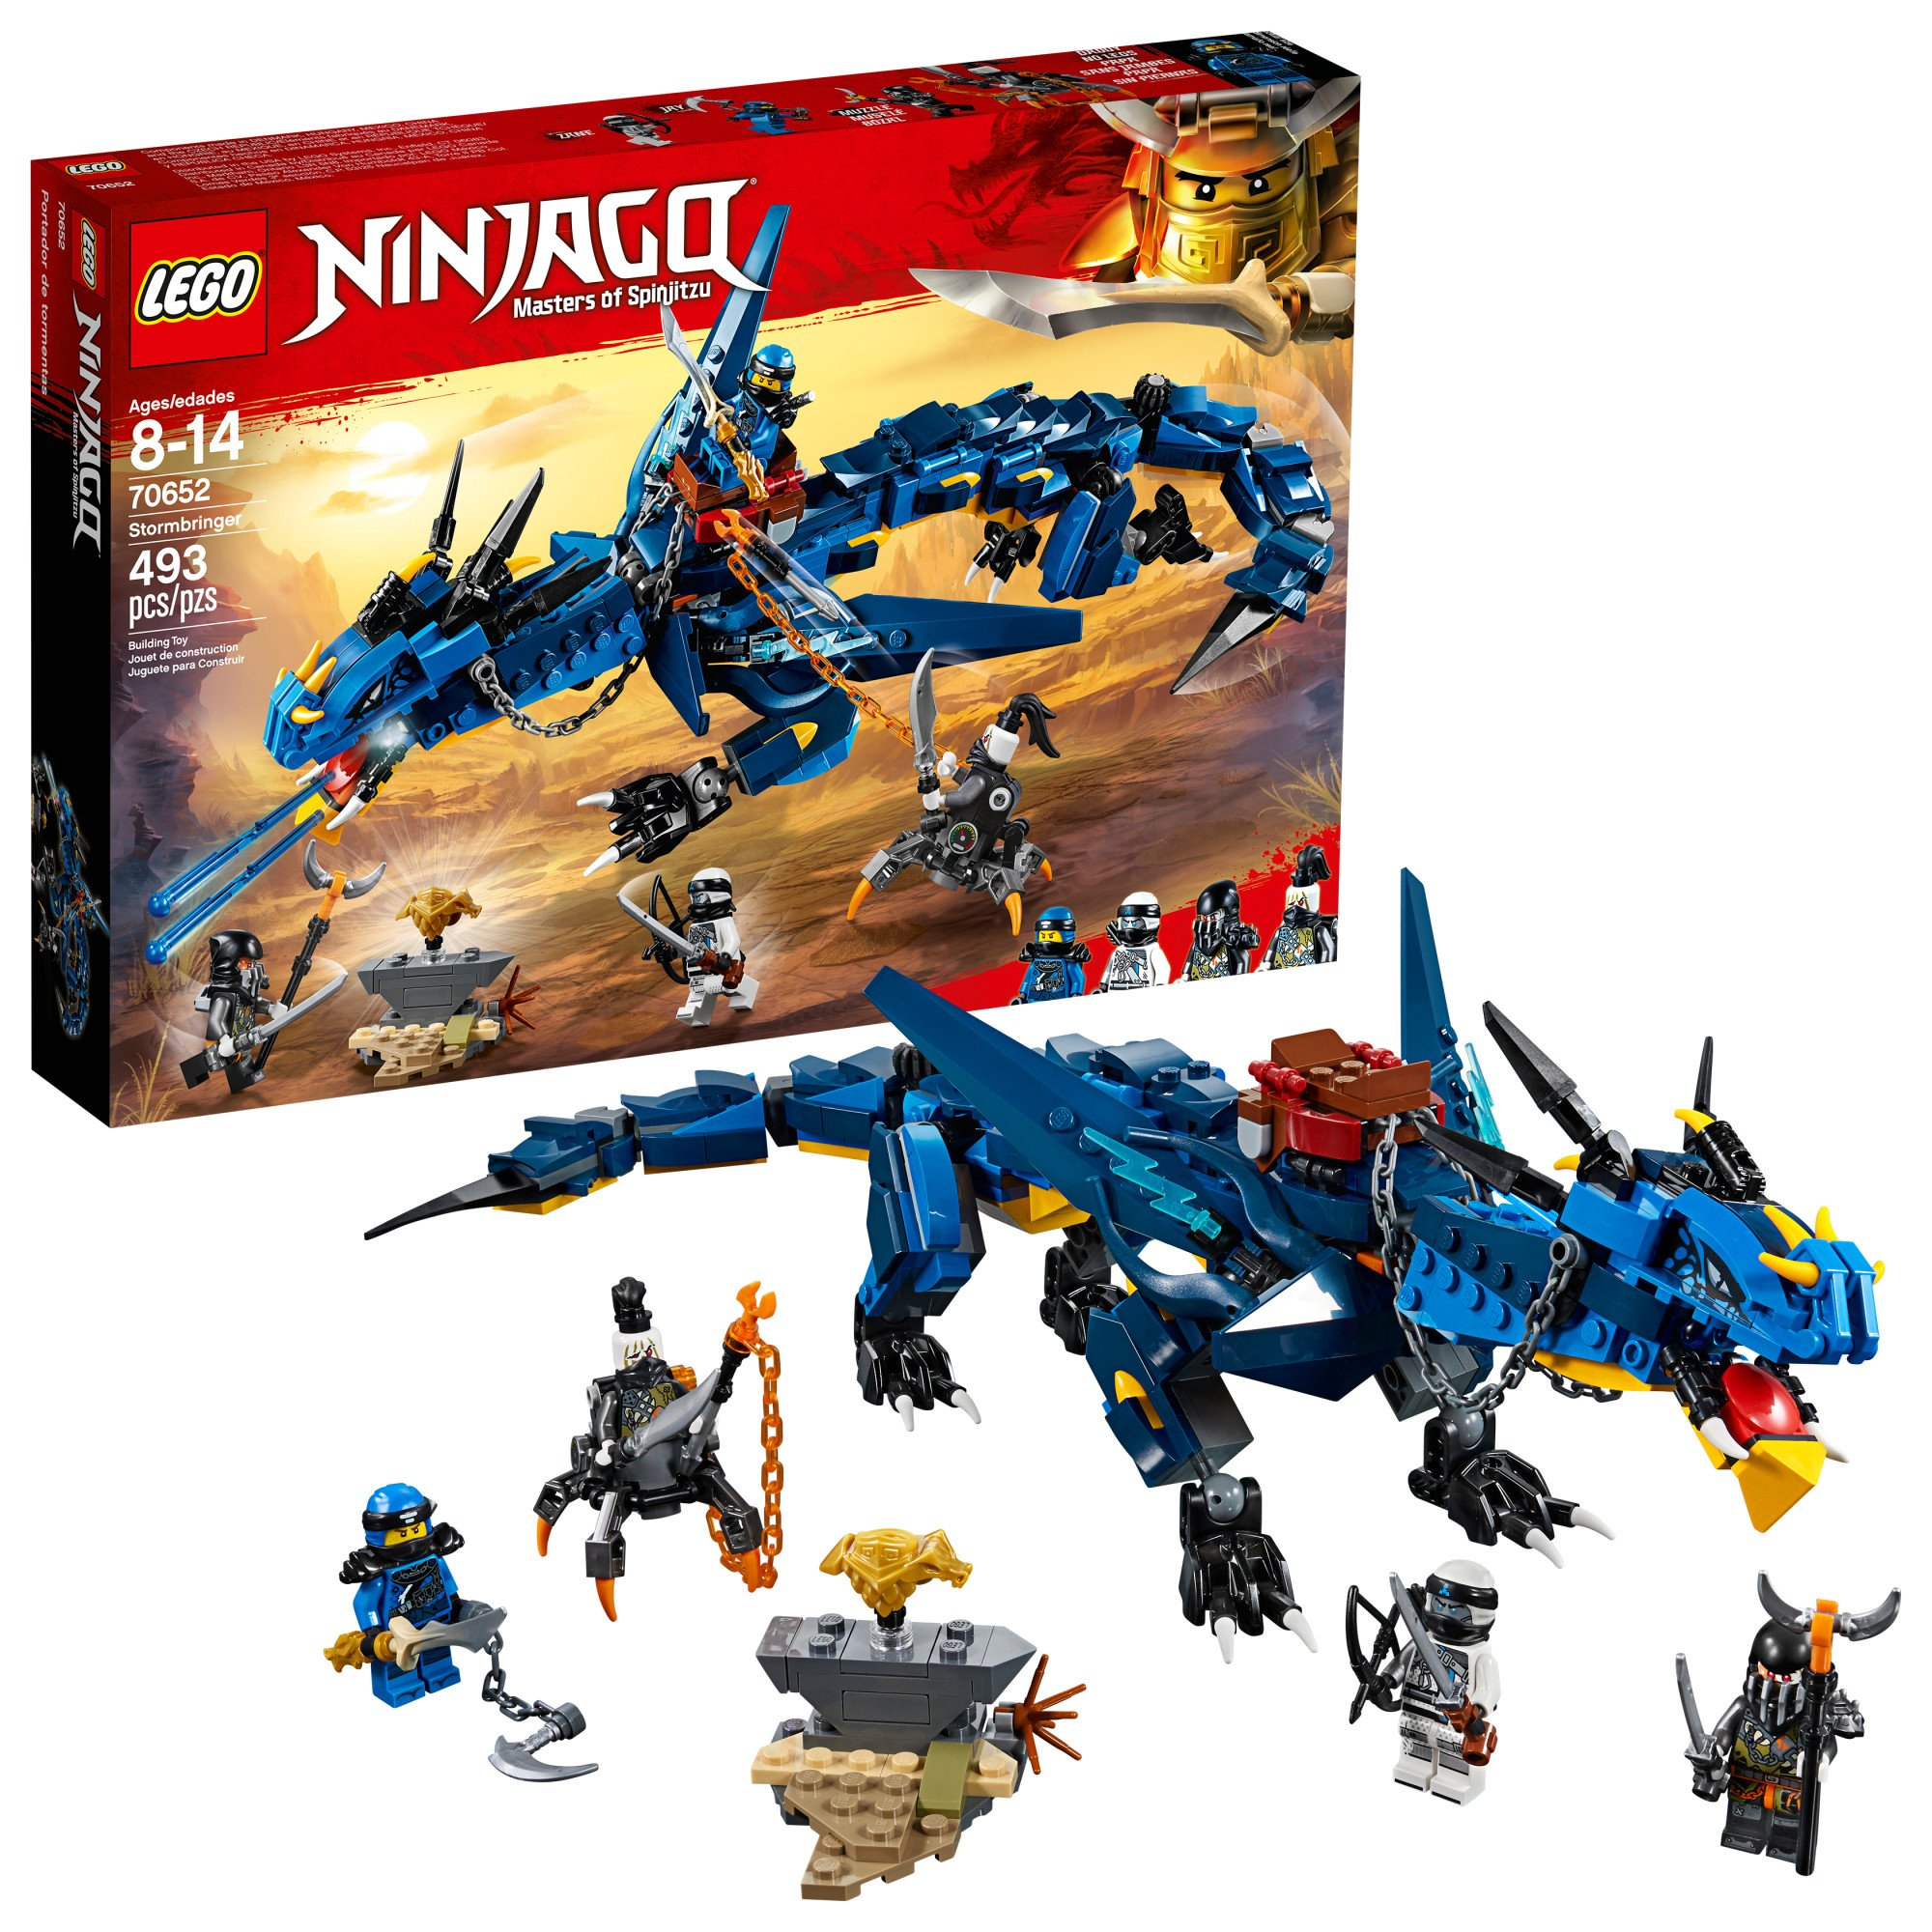 Lego Ninjago Masters Of Spinjitzu Stormbringer 70652 Ninja Toy Building Kit With Blue Dragon Model For Kids Best Playset Gift For Boys 493 Pieces I make in sunset light effect and create dual sword as her weapon. lego ninjago masters of spinjitzu stormbringer 70652 ninja toy building kit with blue dragon model for kids best playset gift for boys 493 pieces